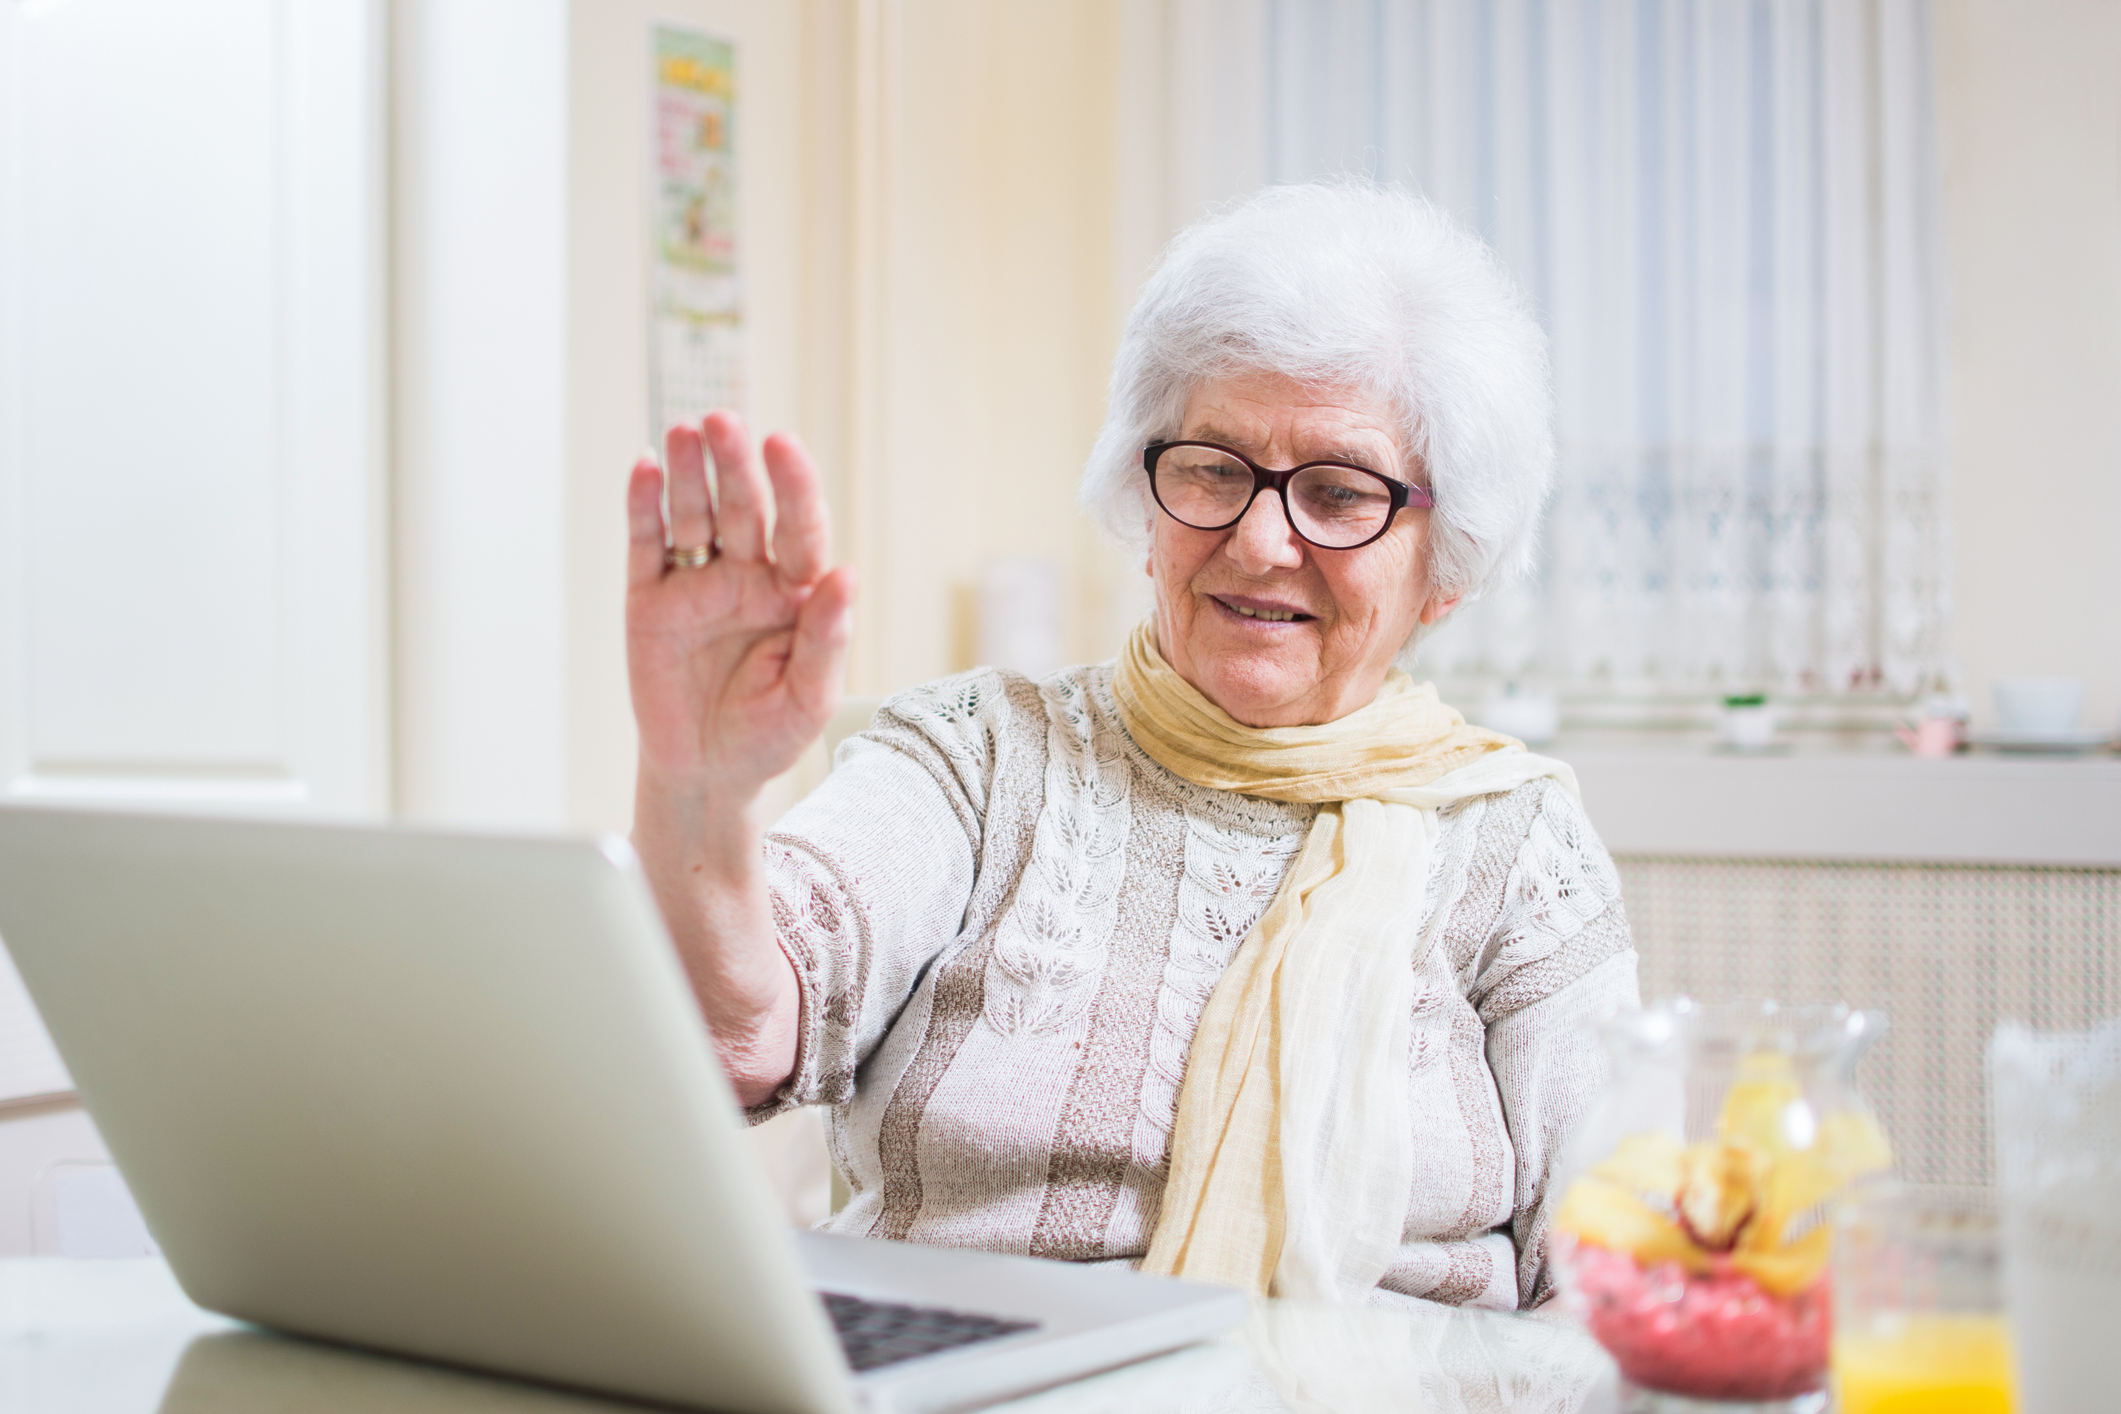 FaceTime / Skype / Snapchat Loved Ones with our help OR Receive Phone Check-Ins from Cardinal Gerontology  - Schedule a Connection Time